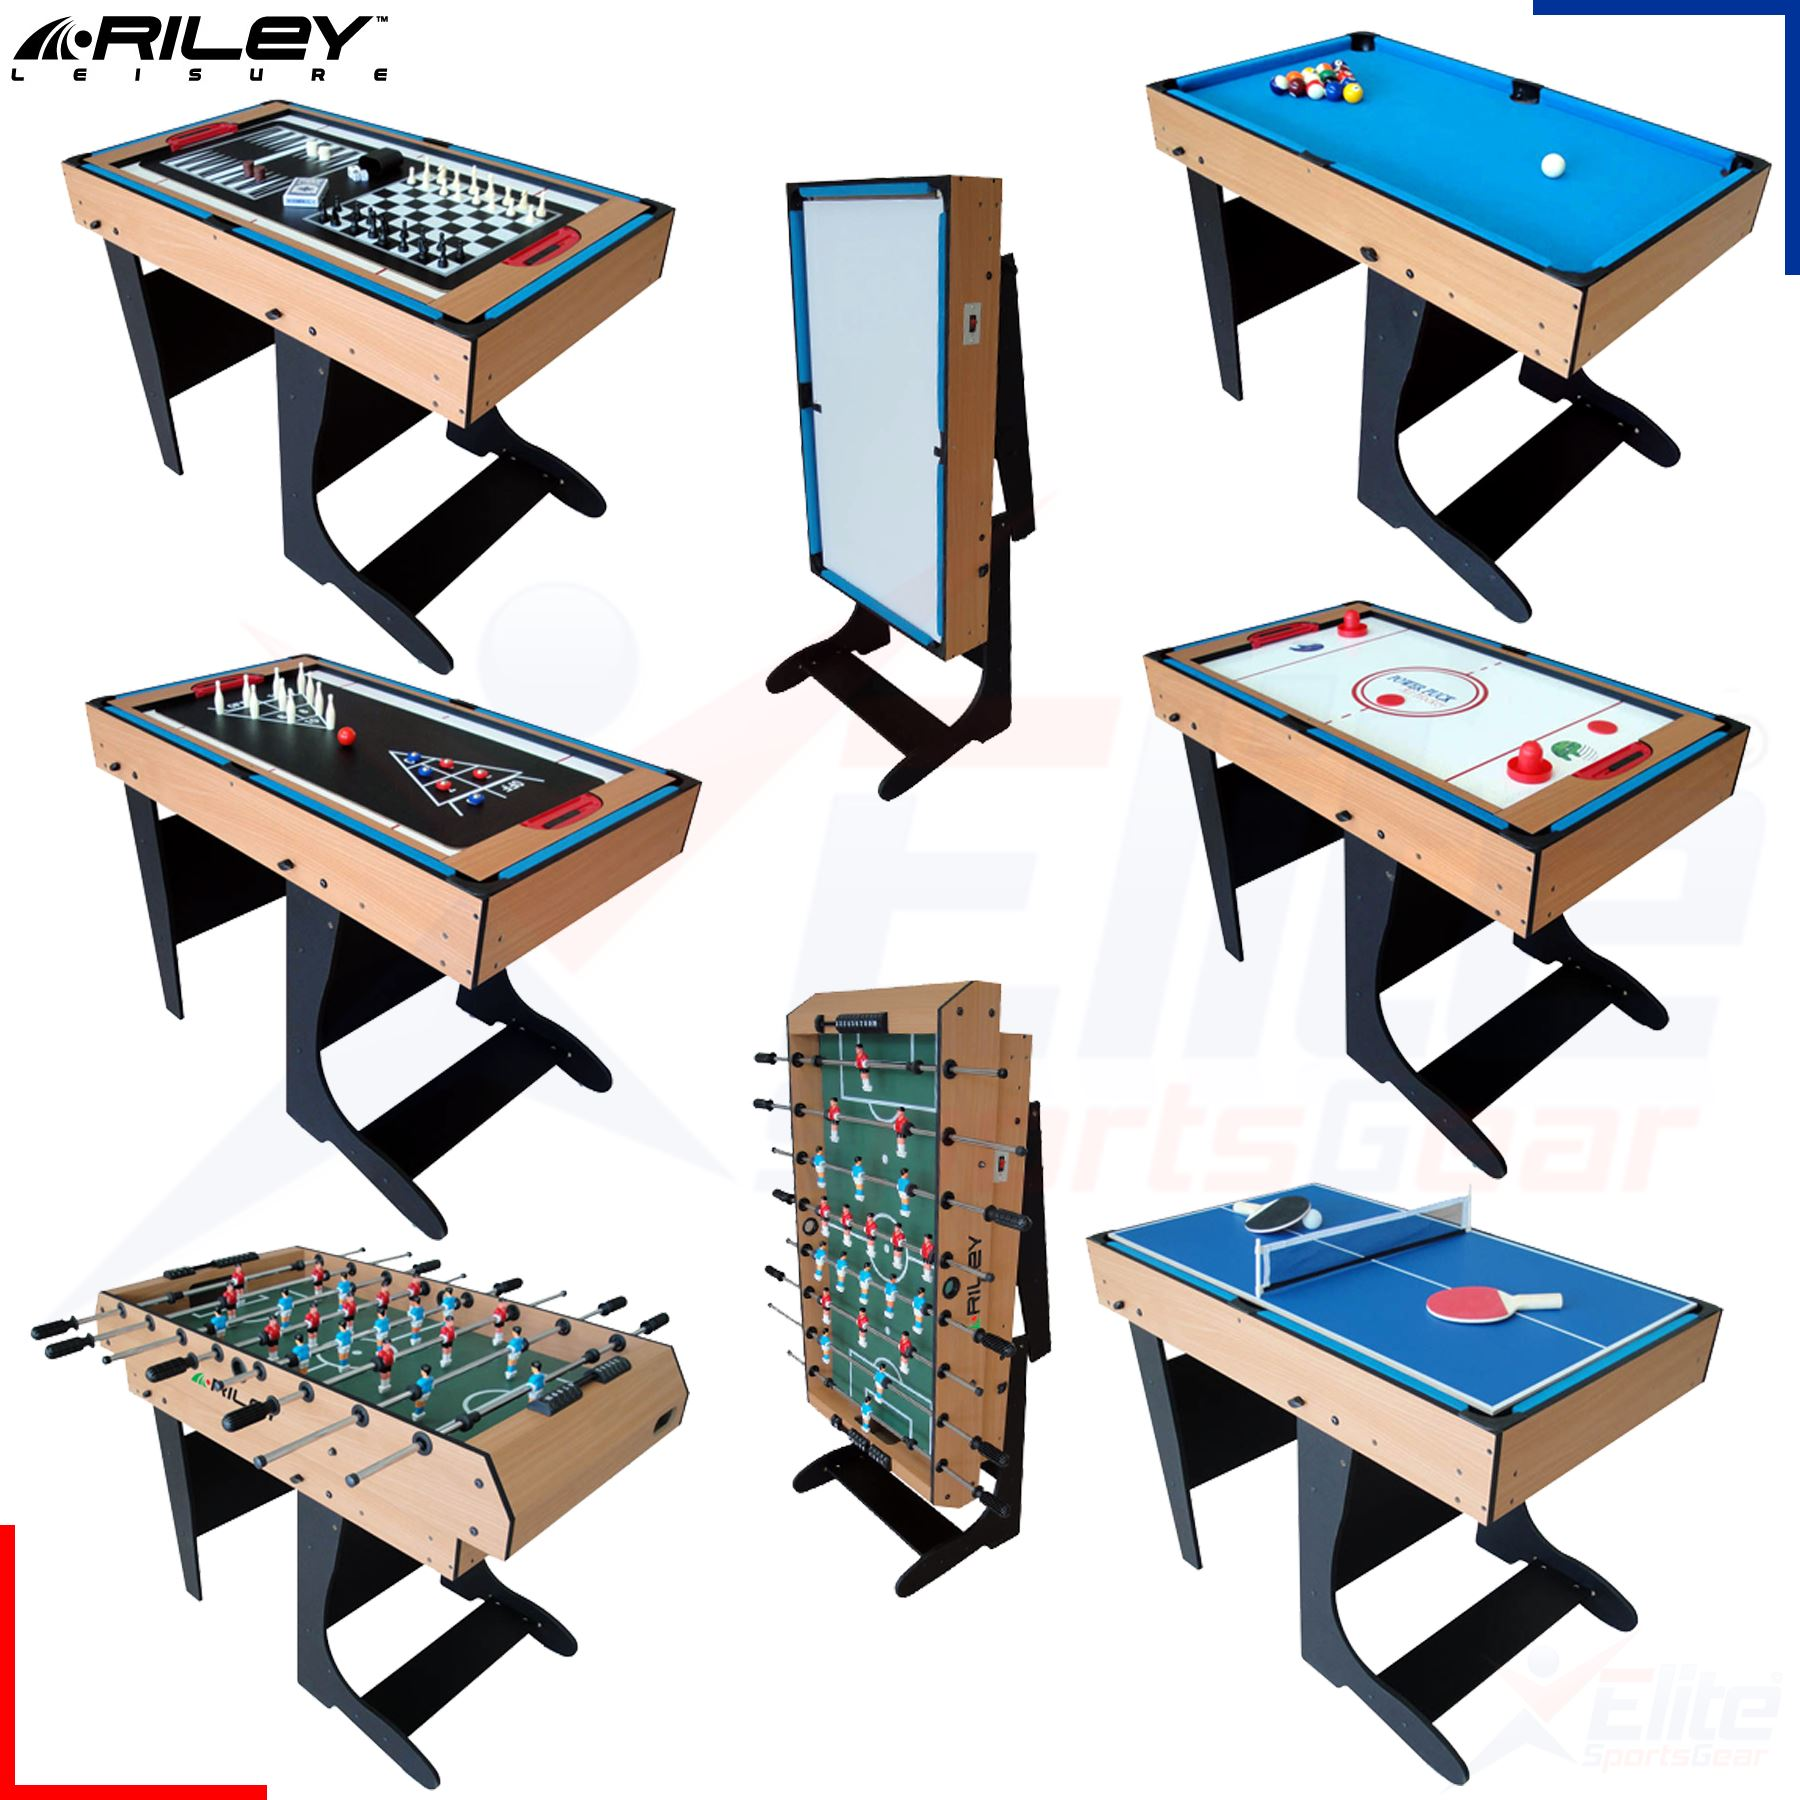 Riley 12 in 1 multi family games table 4ft football for 12 in 1 game table groupon